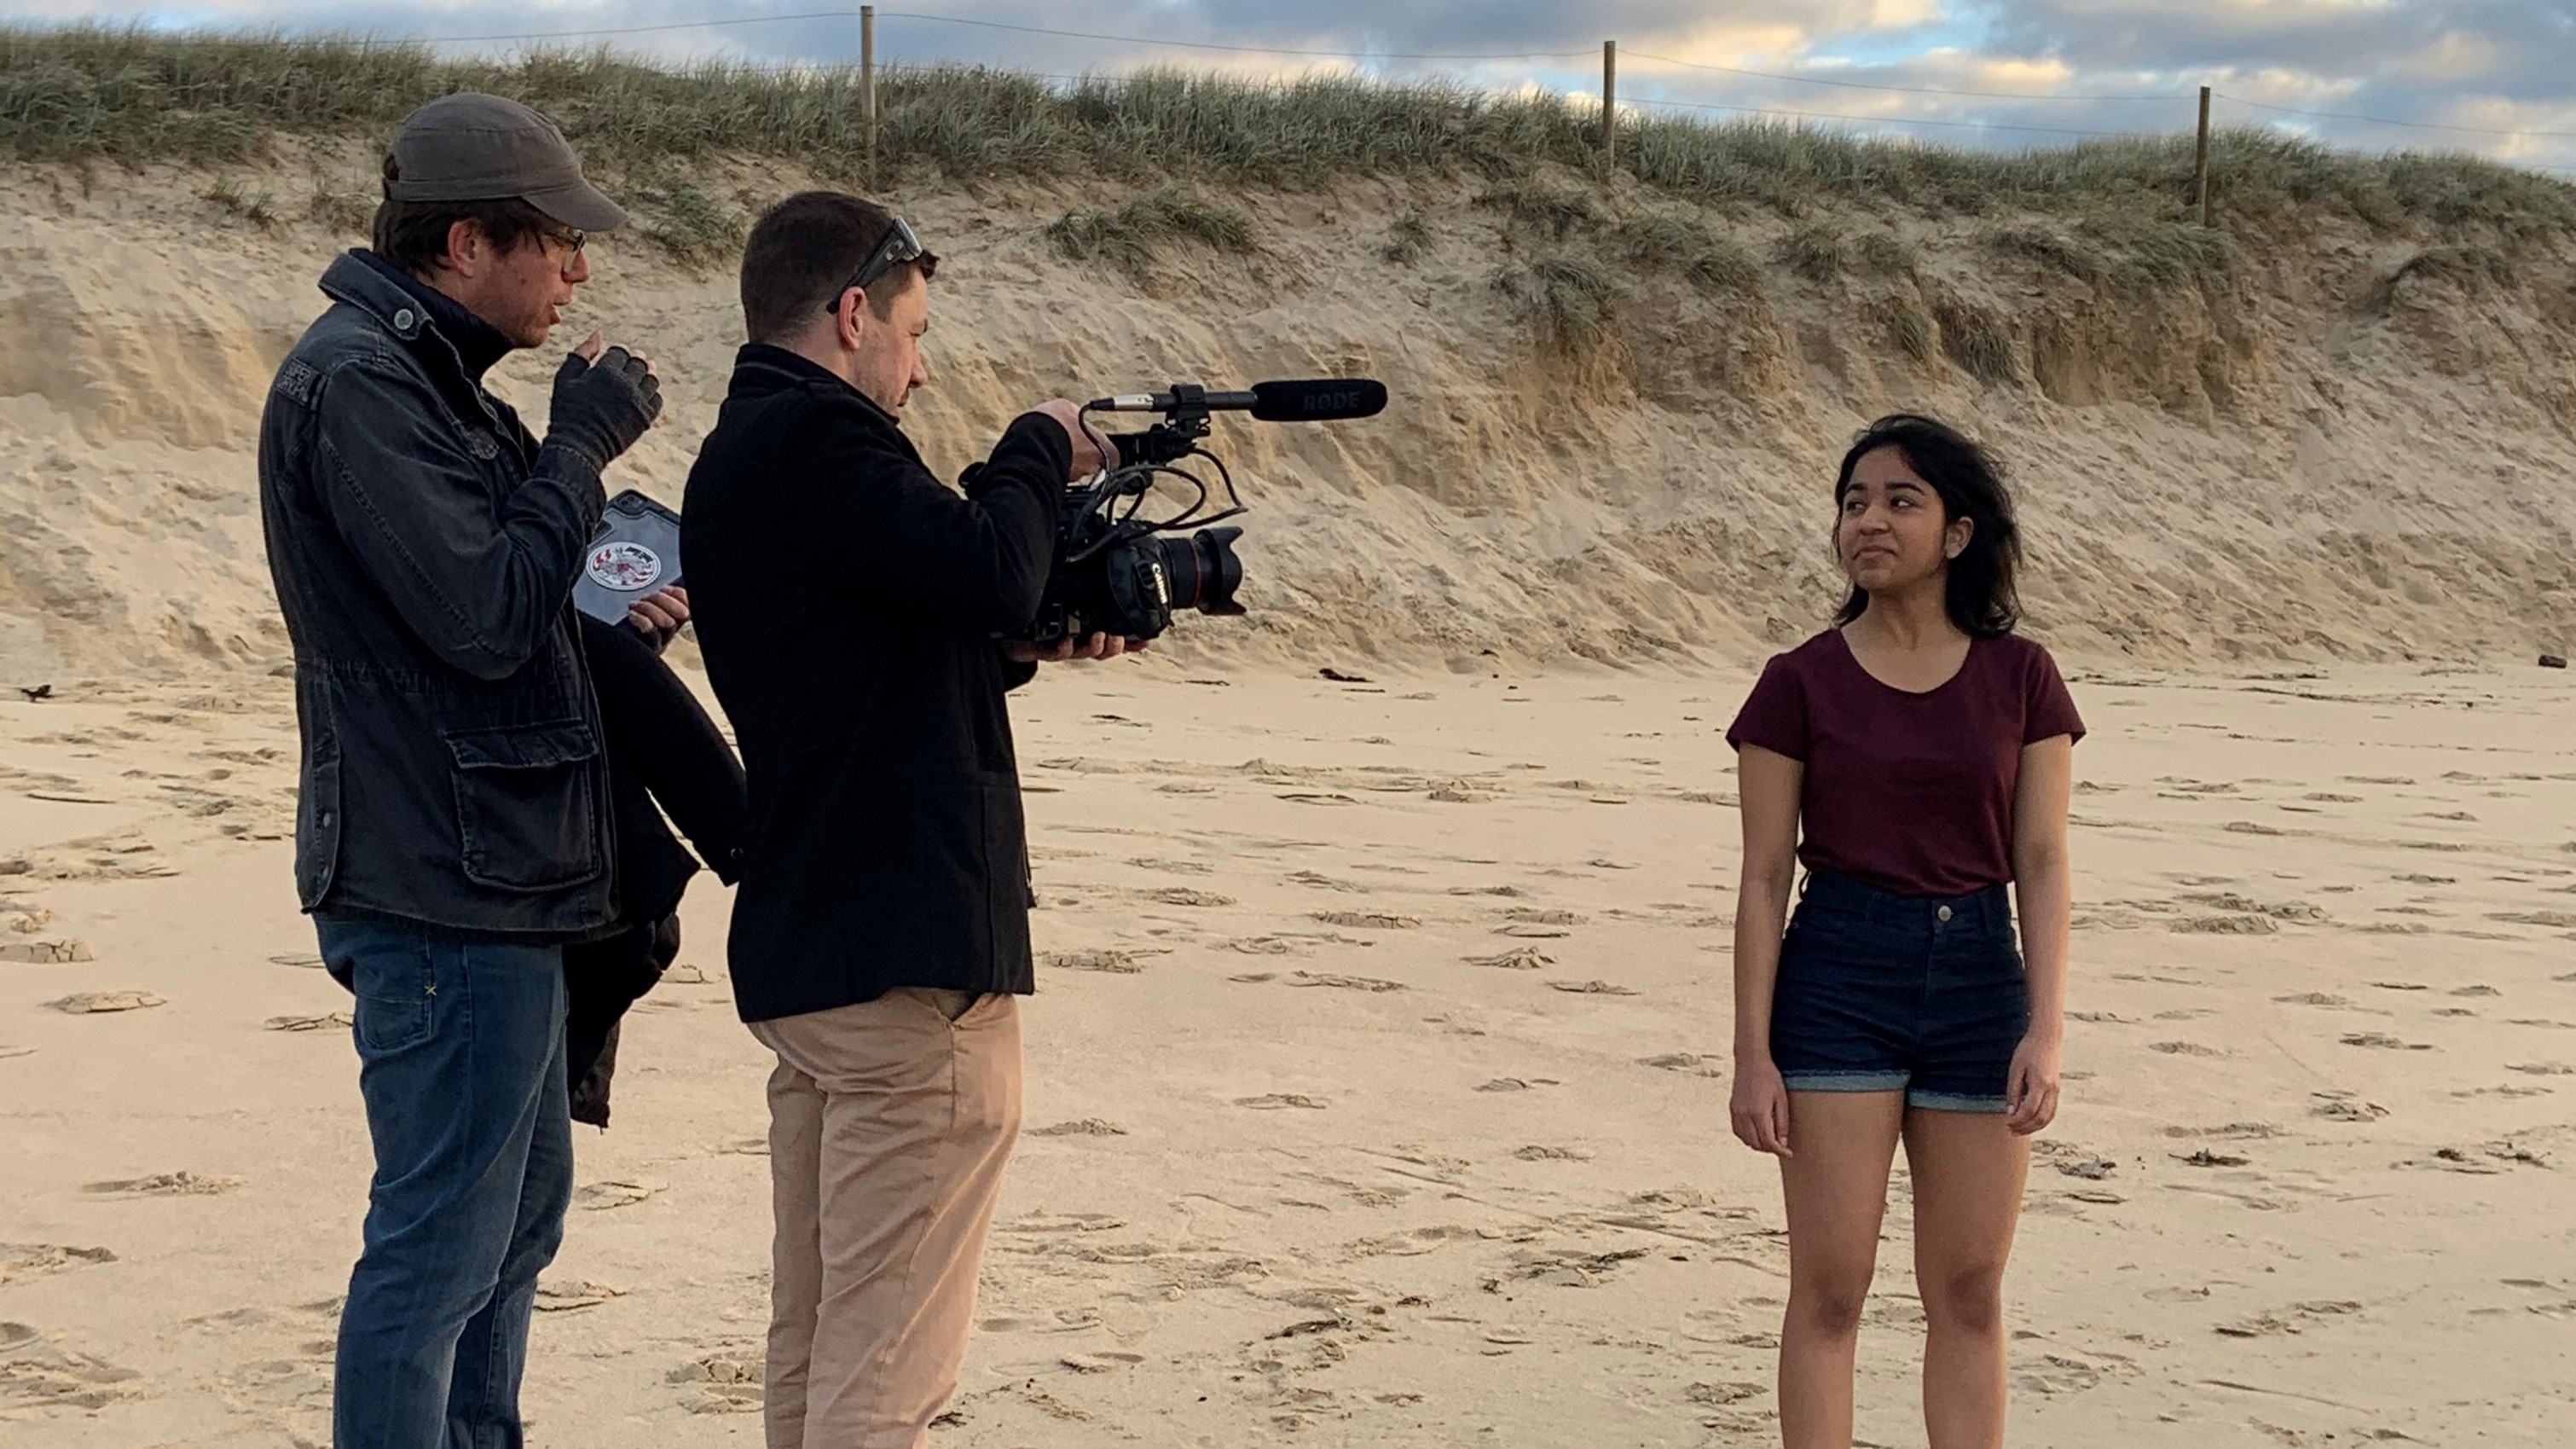 A camera man and his assistant filming an actor on a beach.